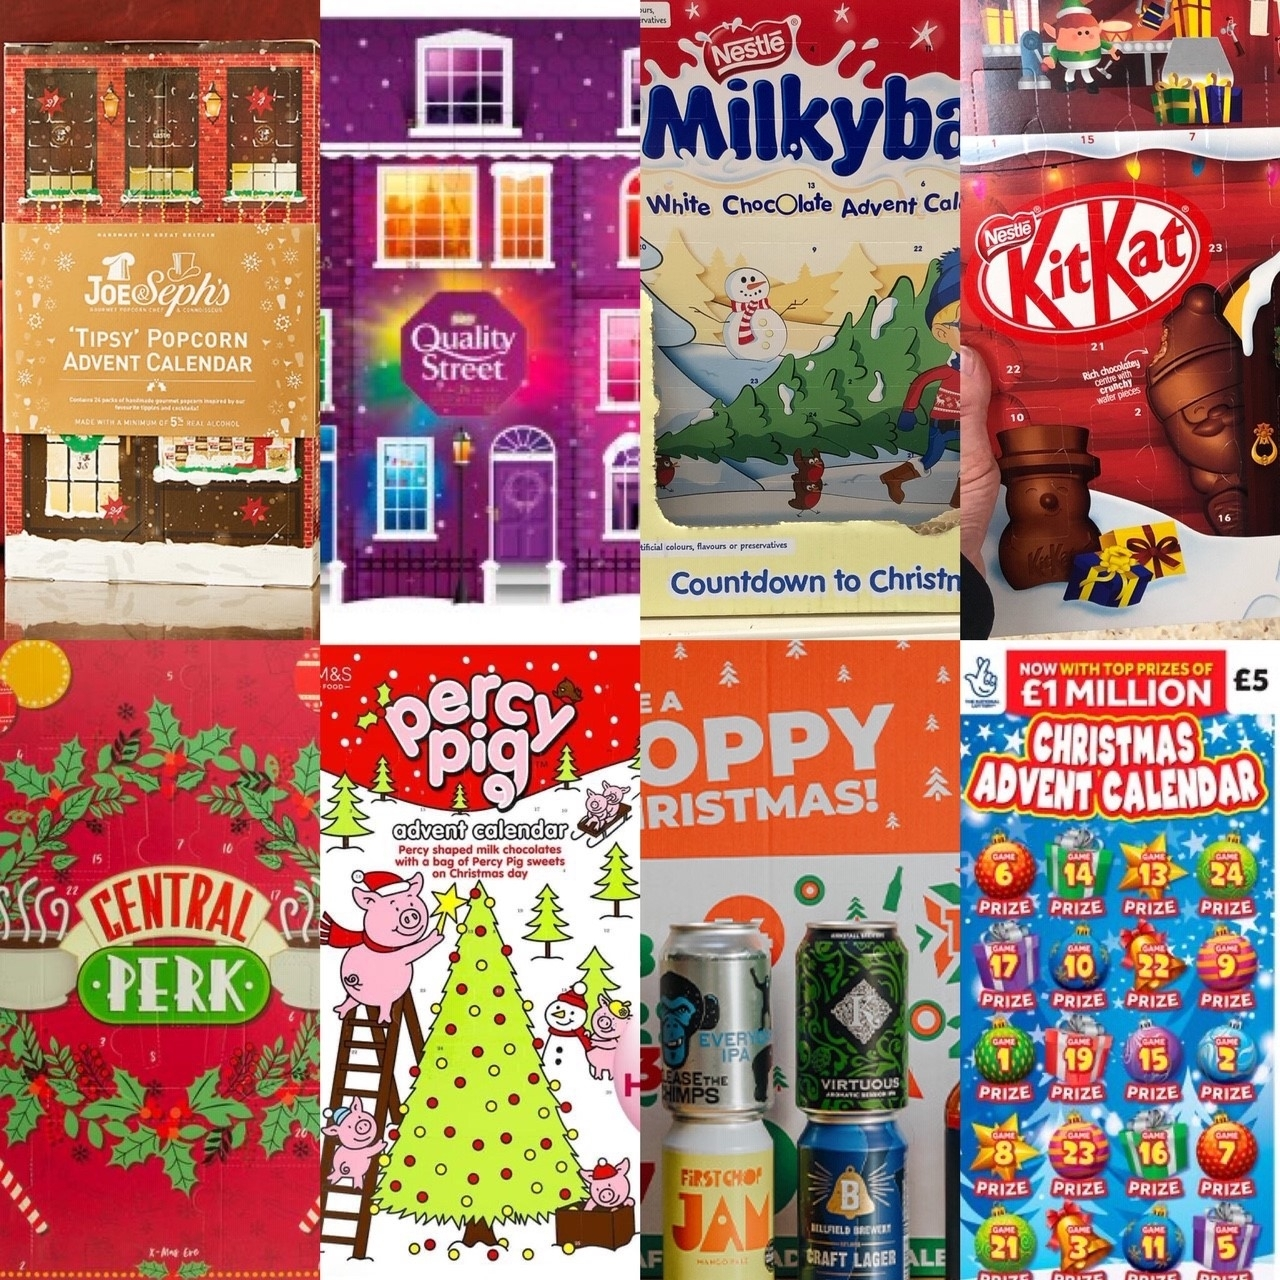 My Gluten Free Advent Calendar Guide (Dairy Free Section Too)